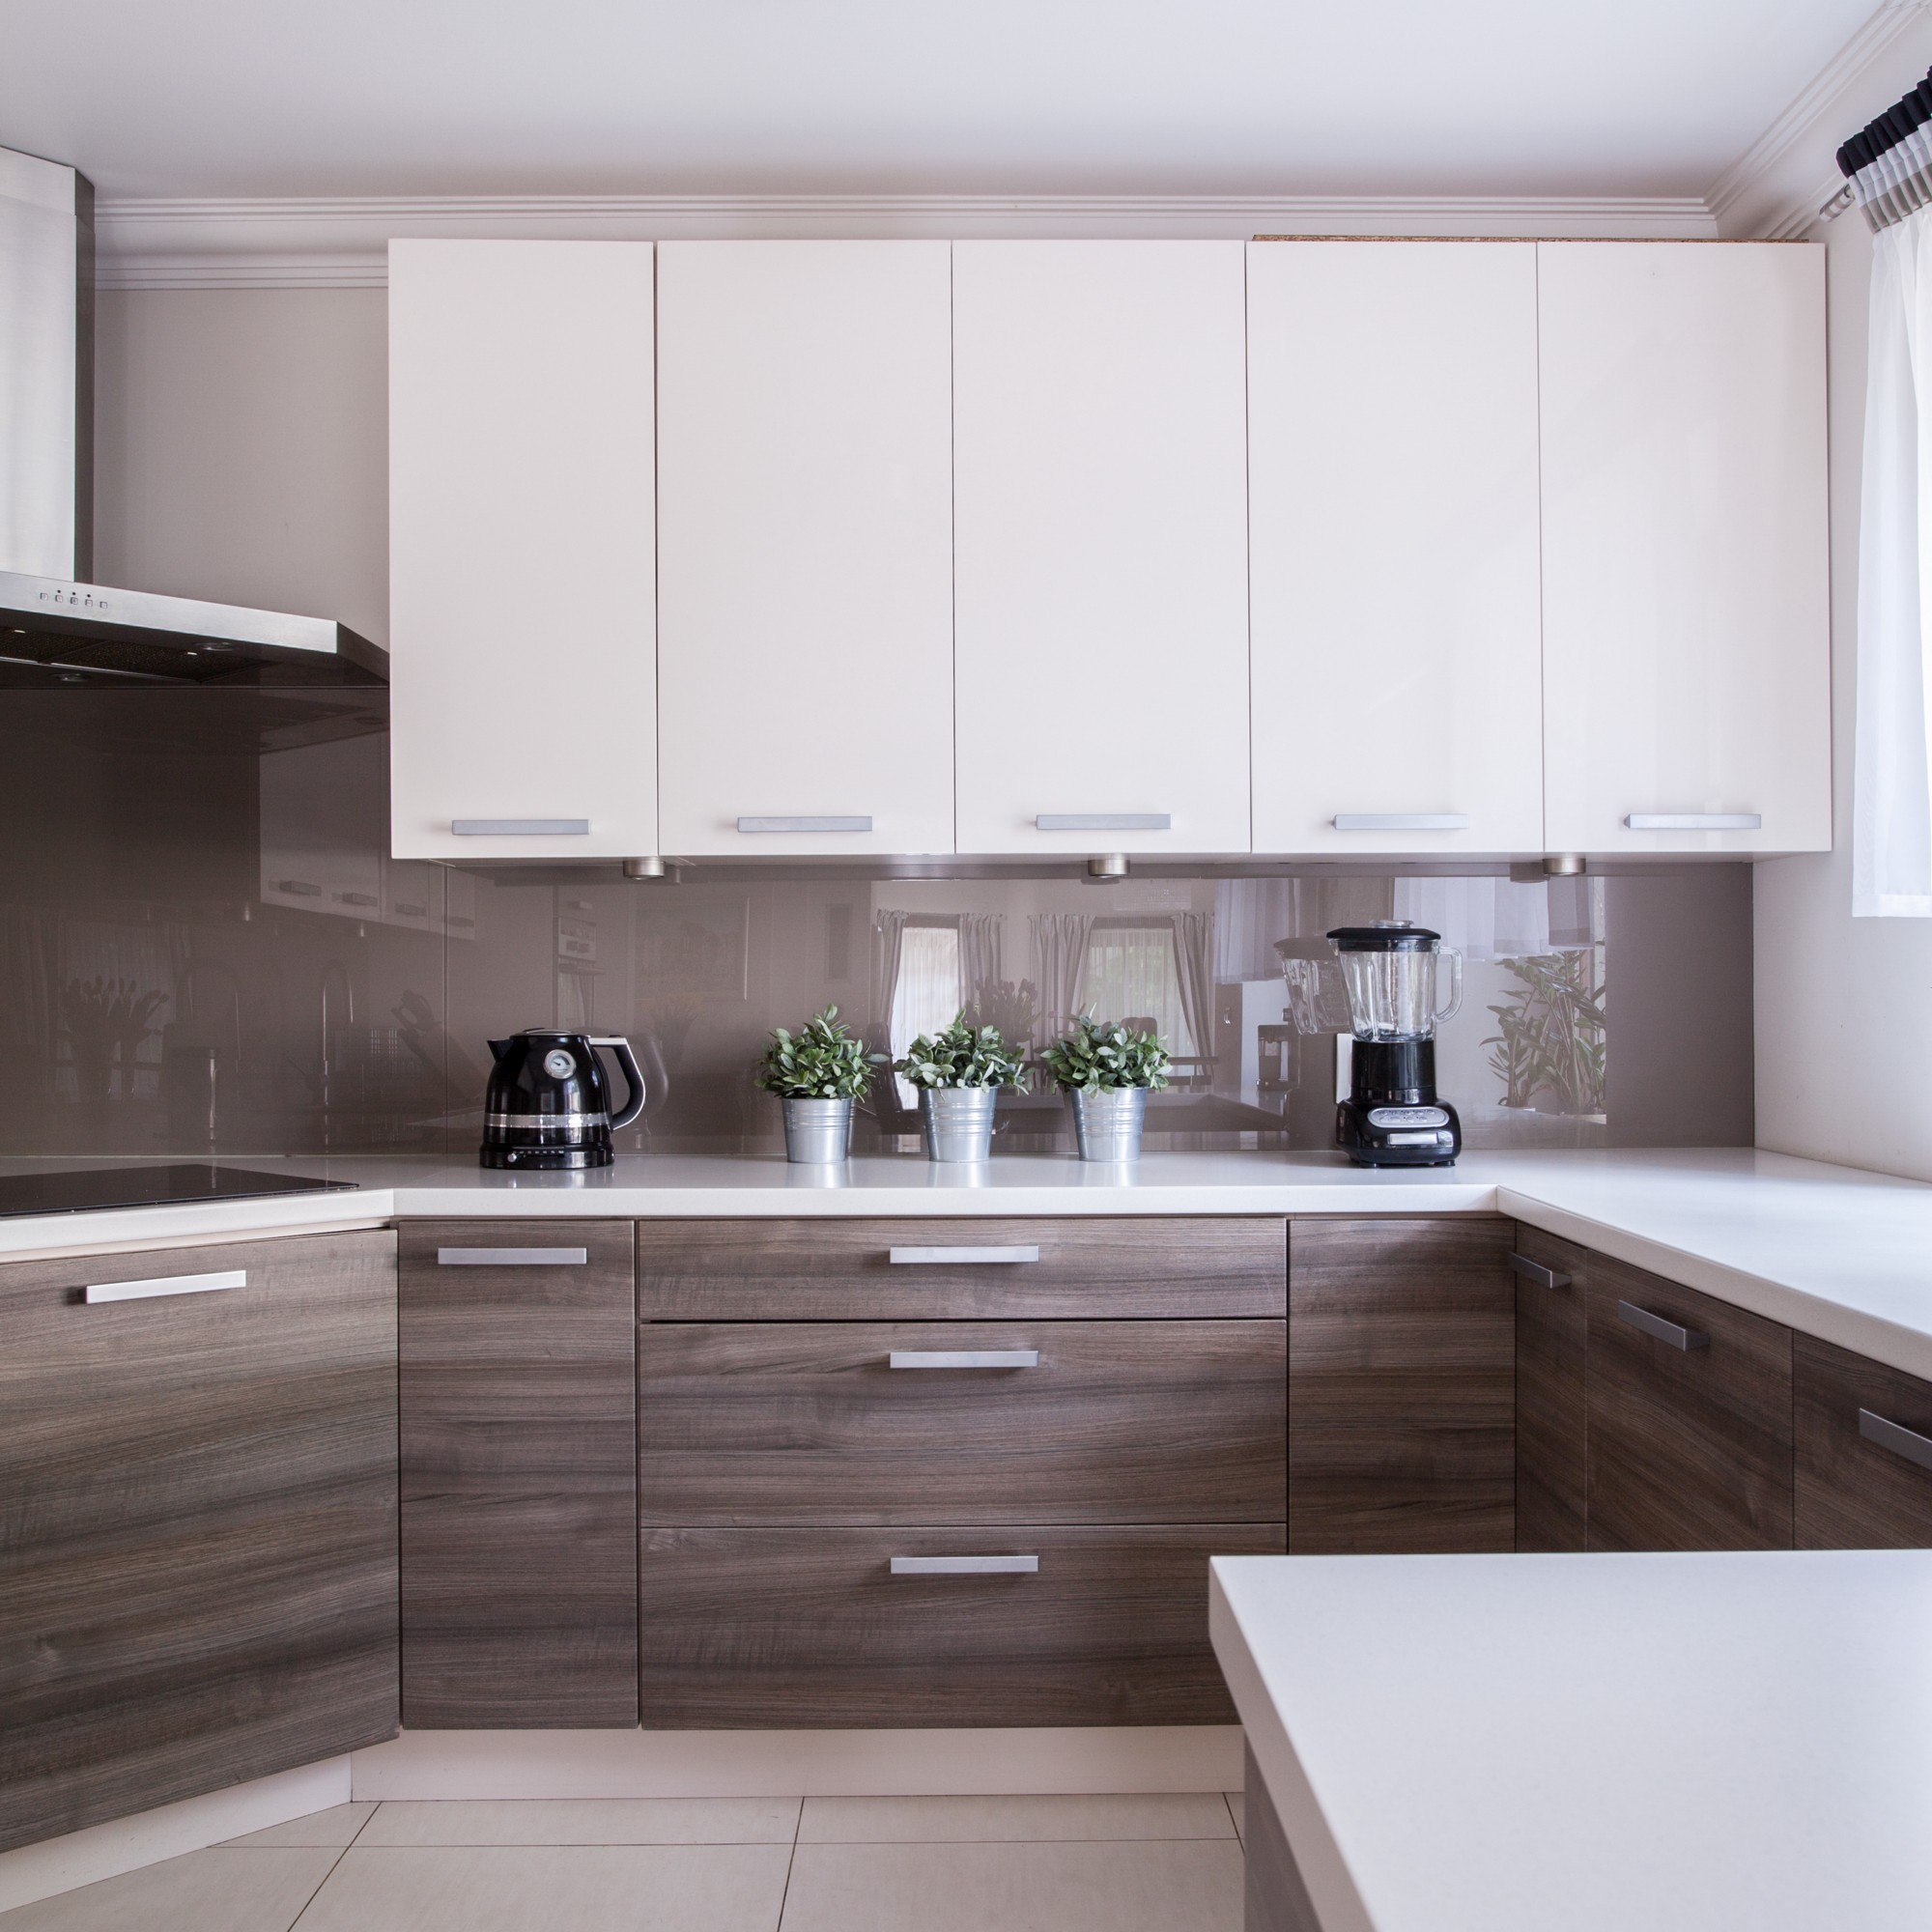 [Pros & Cons] 5 Kitchen Layout